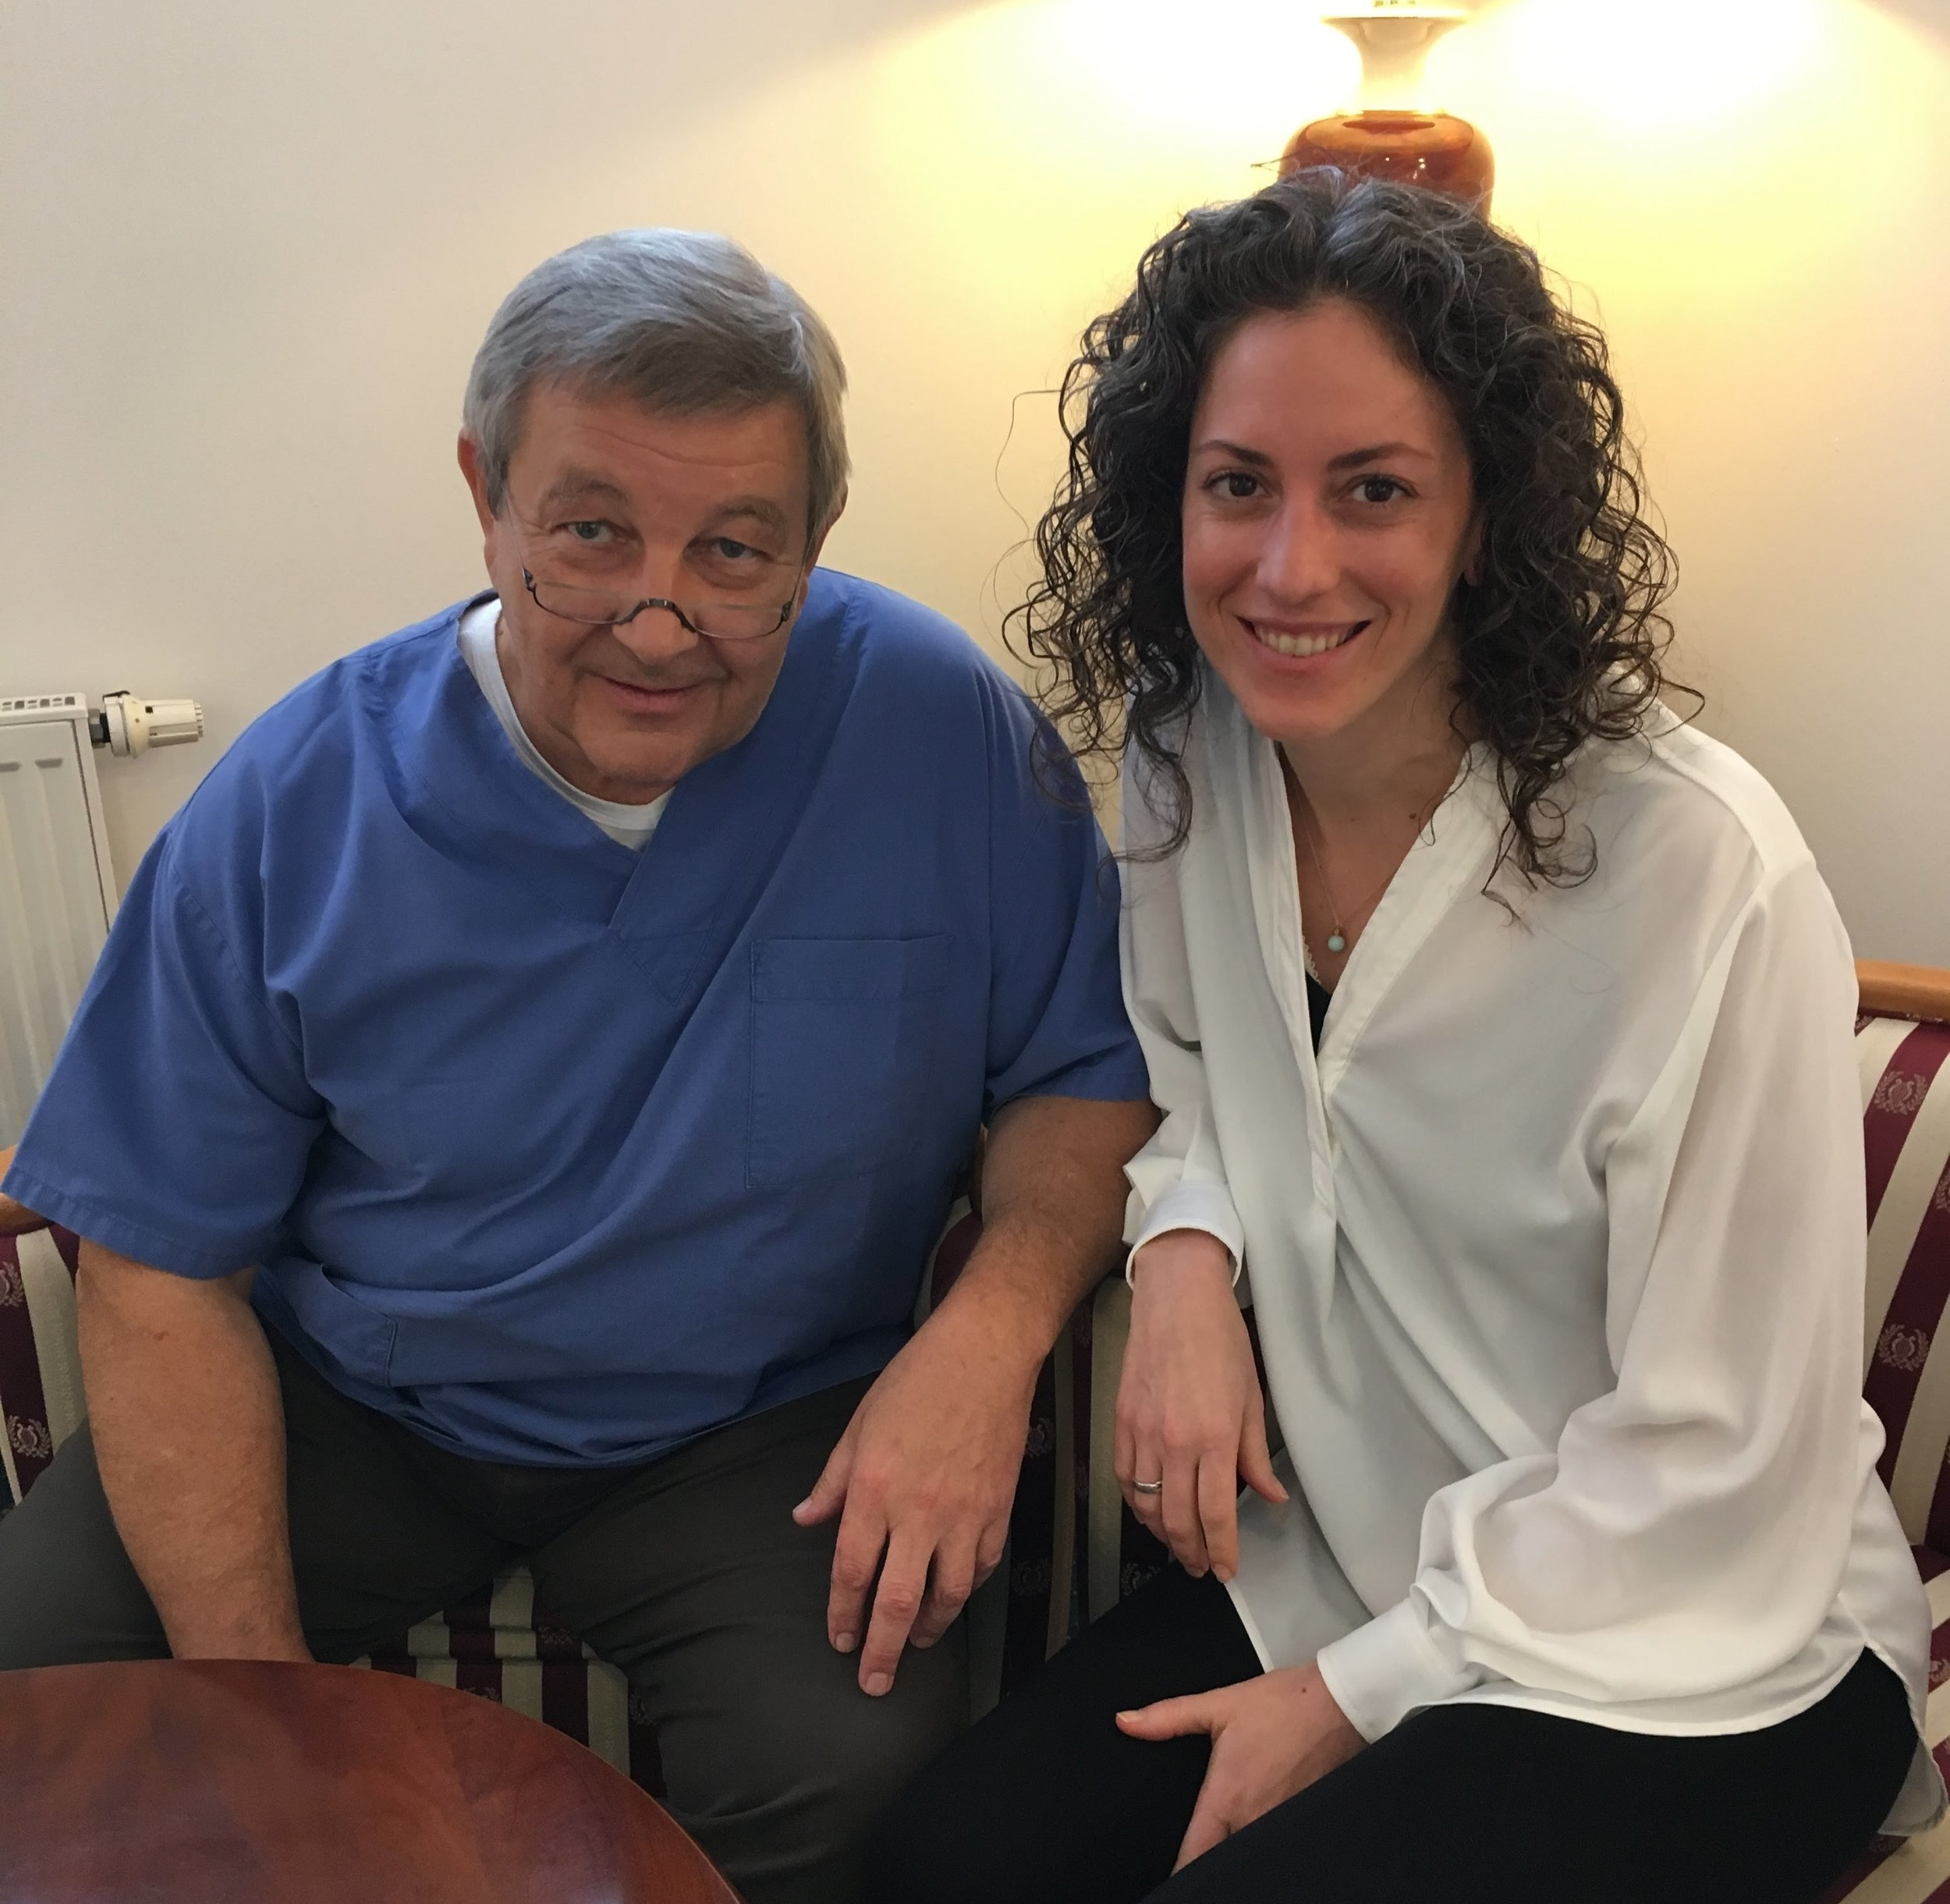 Dr. Axel Weber and Colleen Flowers in December 2017